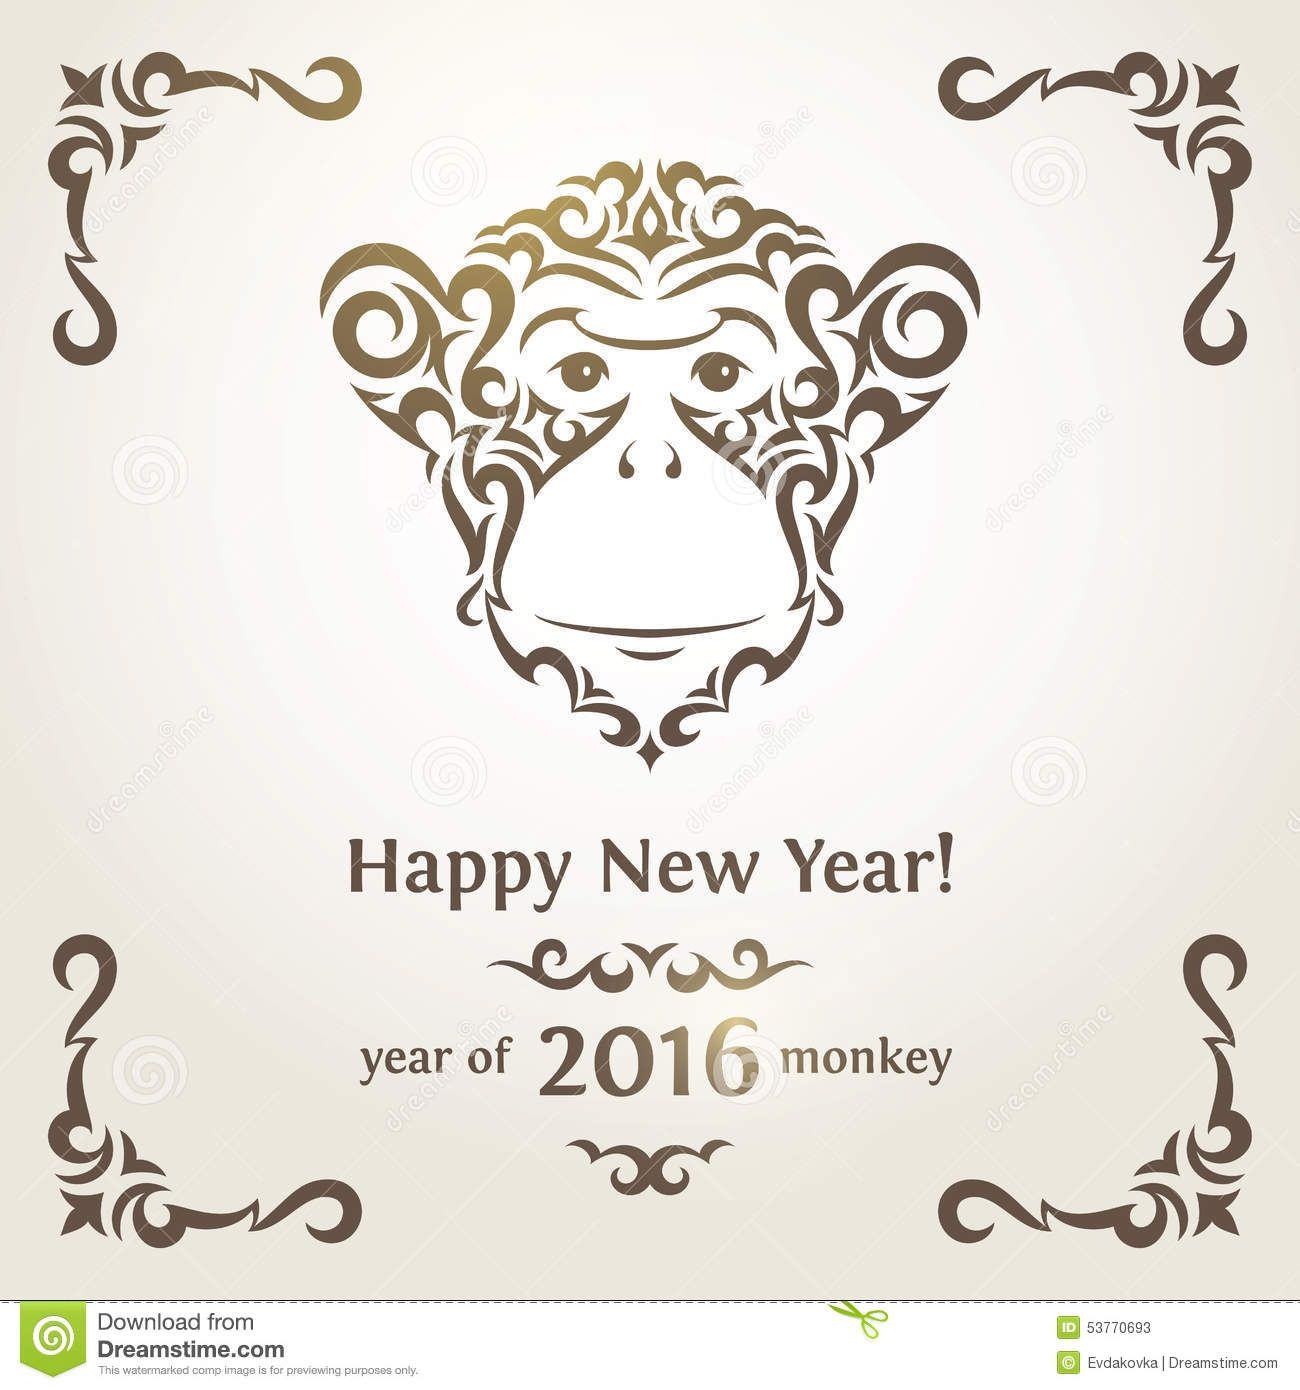 Greeting New Year Card With Monkey Symbol Of The New Year Card Symbols Newyear